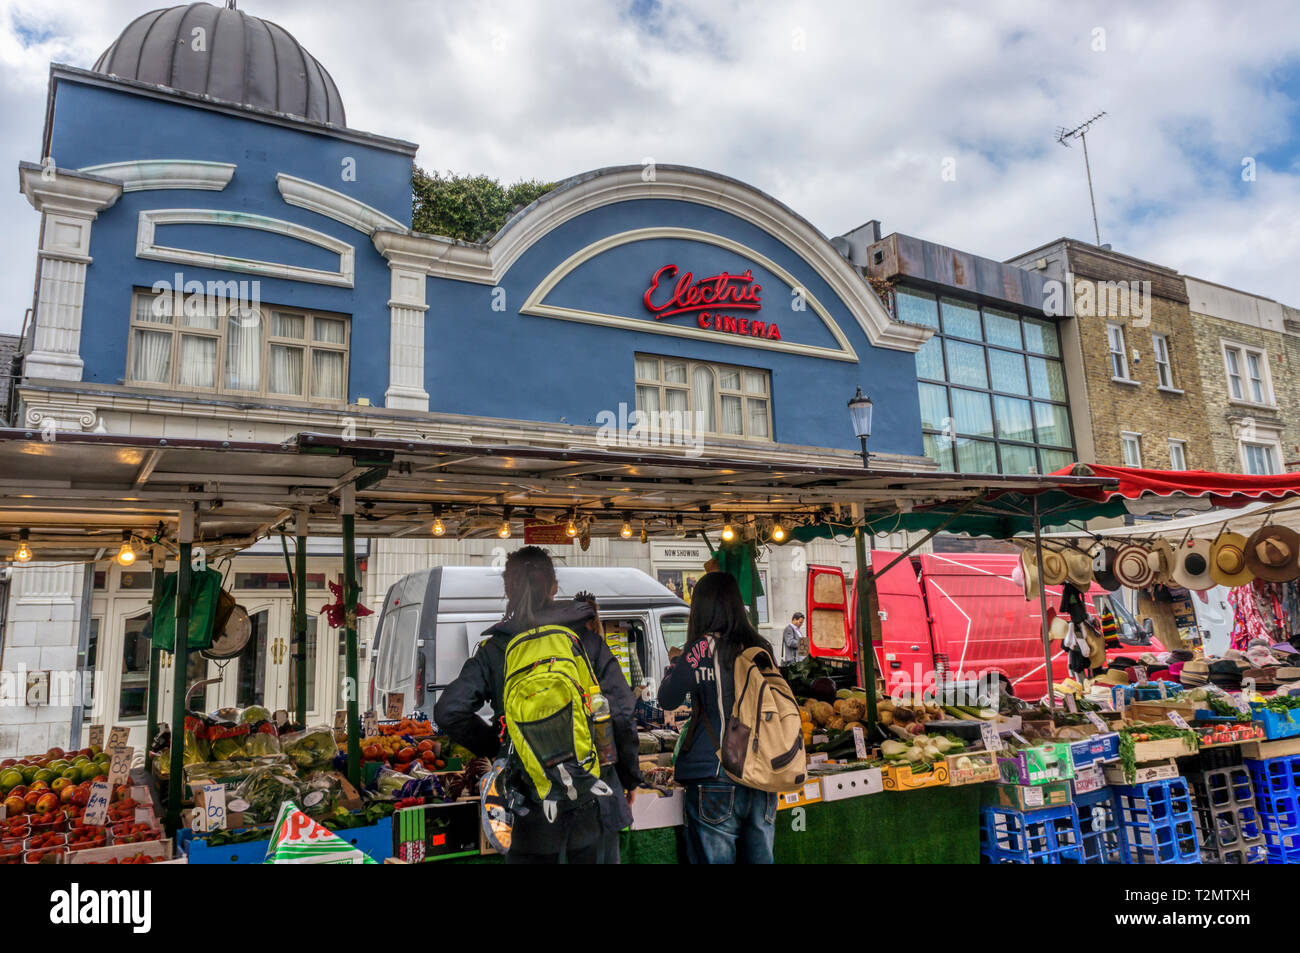 Portobello Road market in front of the Electric Cinema in Notting Hill. - Stock Image